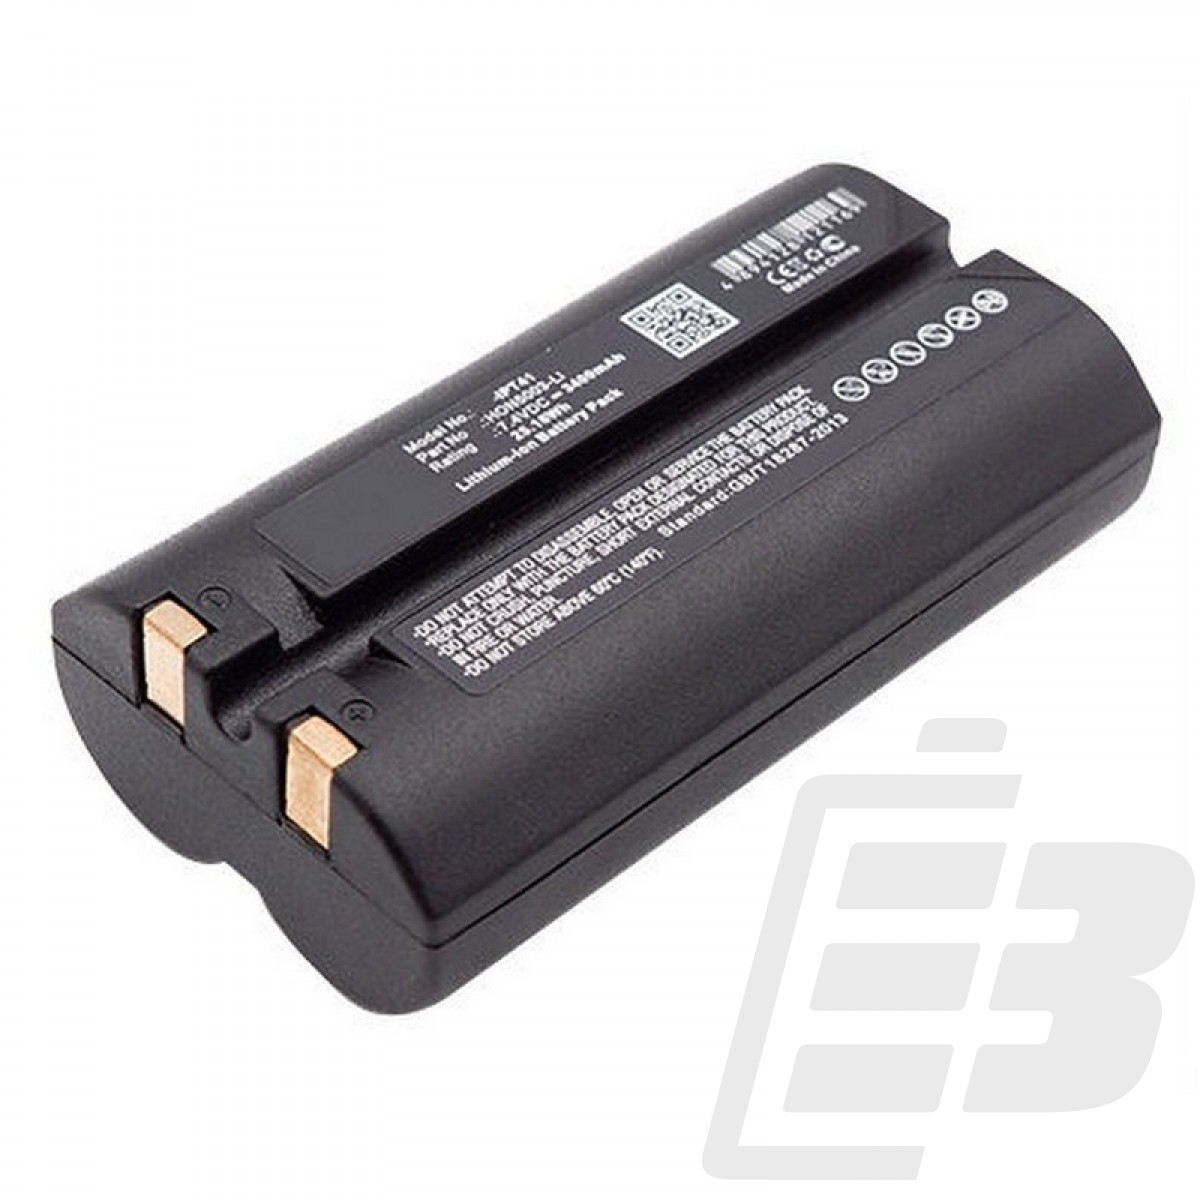 Printer battery Datamax-O'Neil Microflash 4T_1